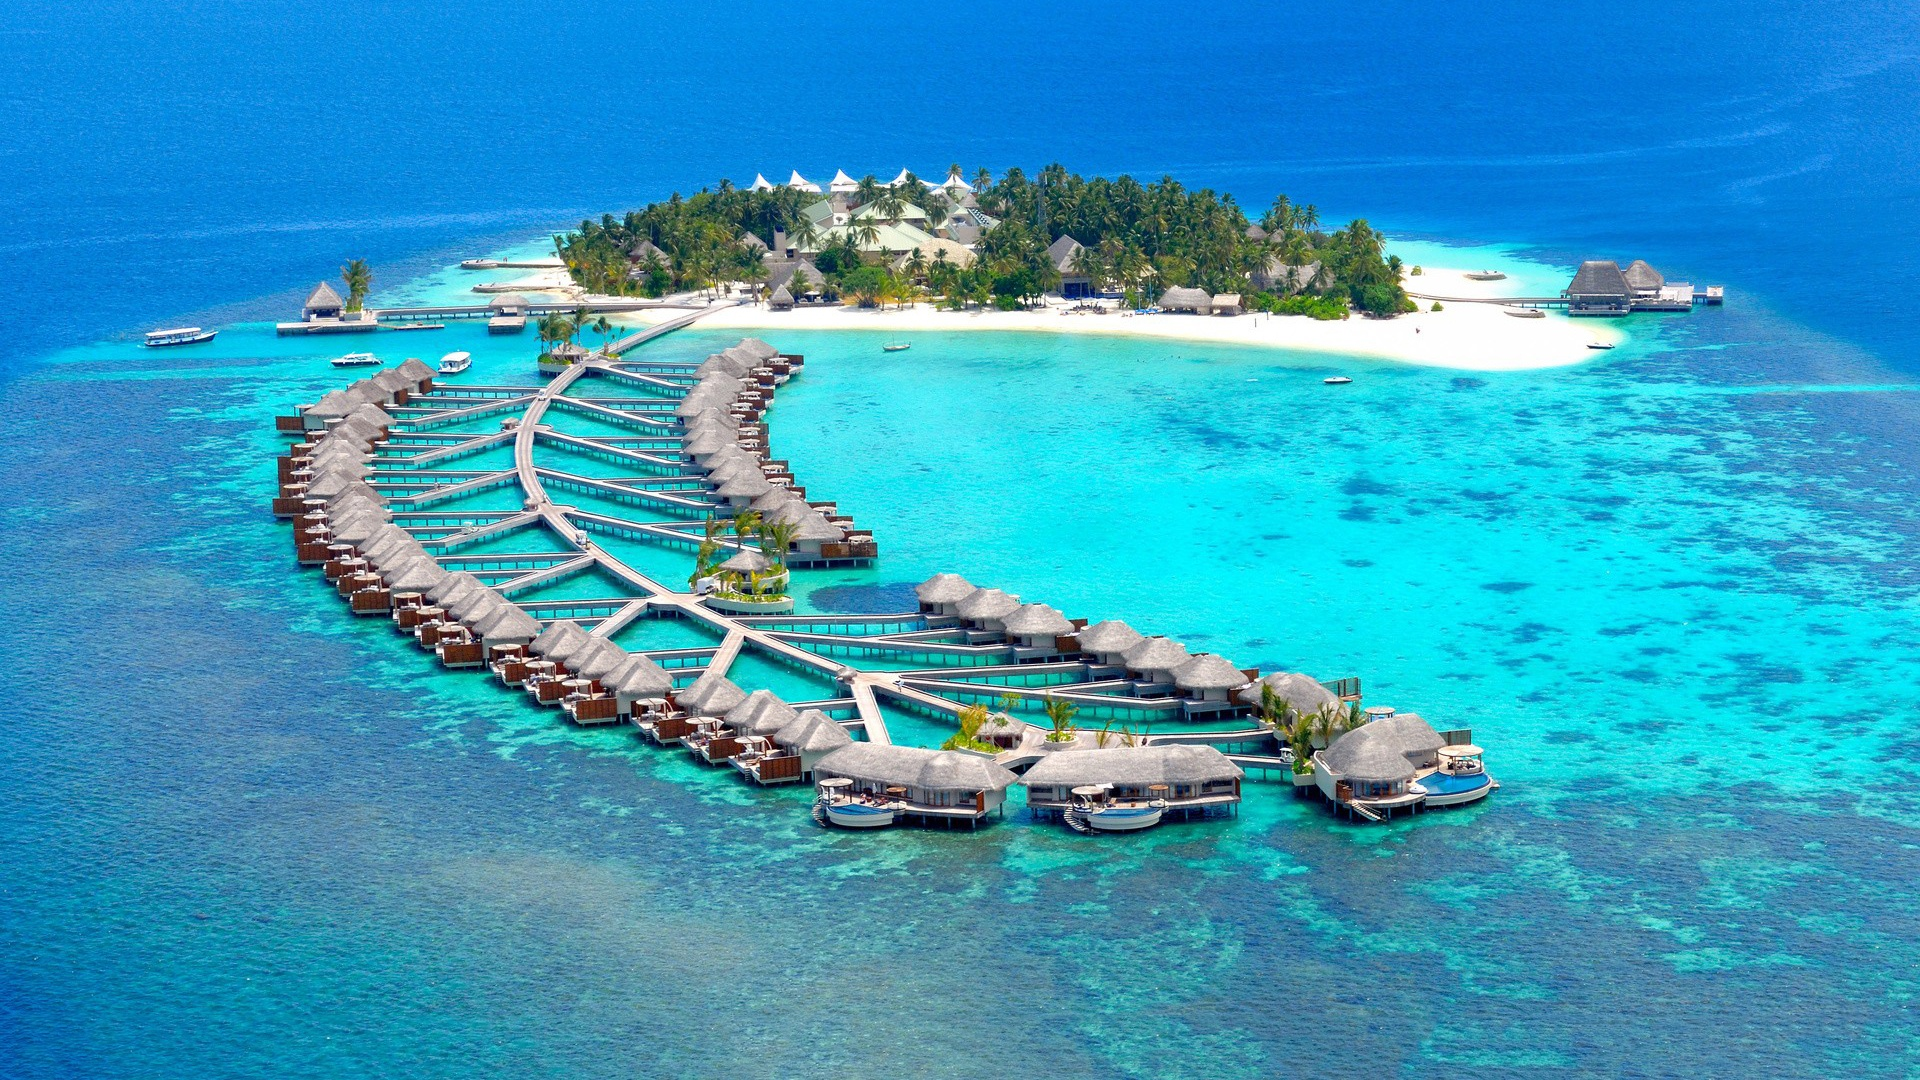 Beautiful Maldives Island Wallpaper Background 6046 Wallpaper High 1920x1080